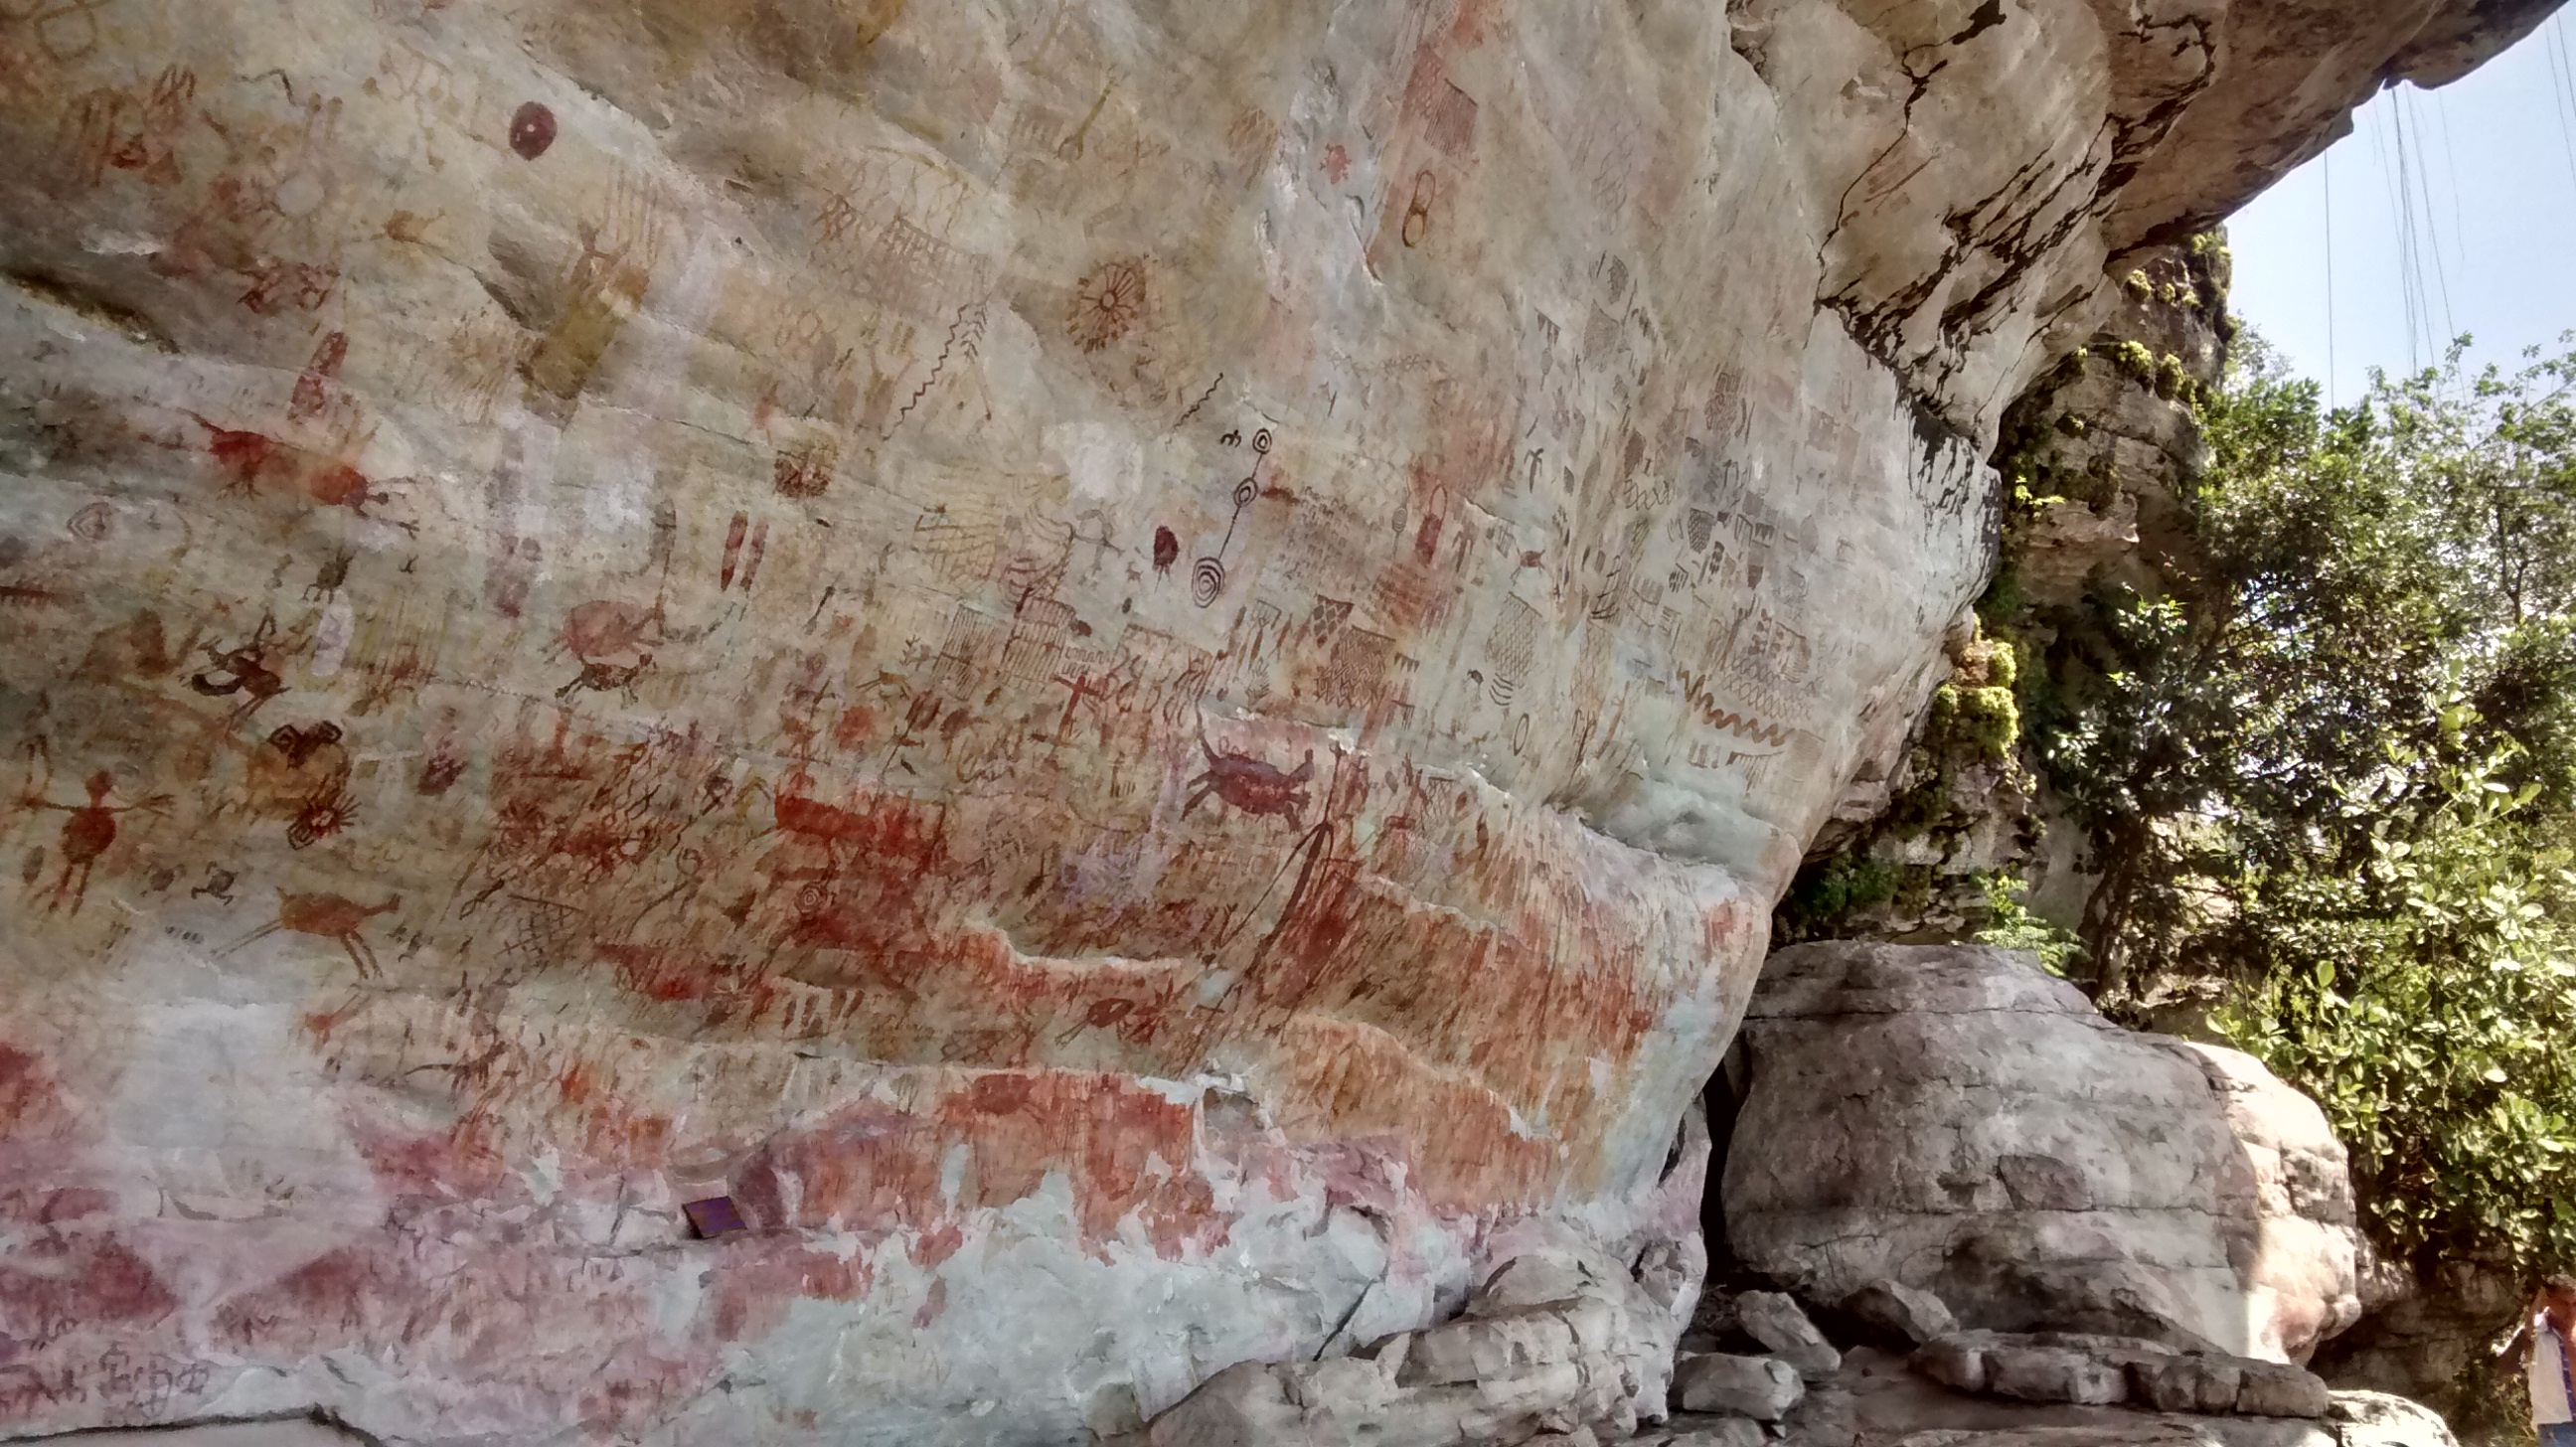 Ancient rock paintings at Nuevo Tolima, Guaviare department, Colombia.